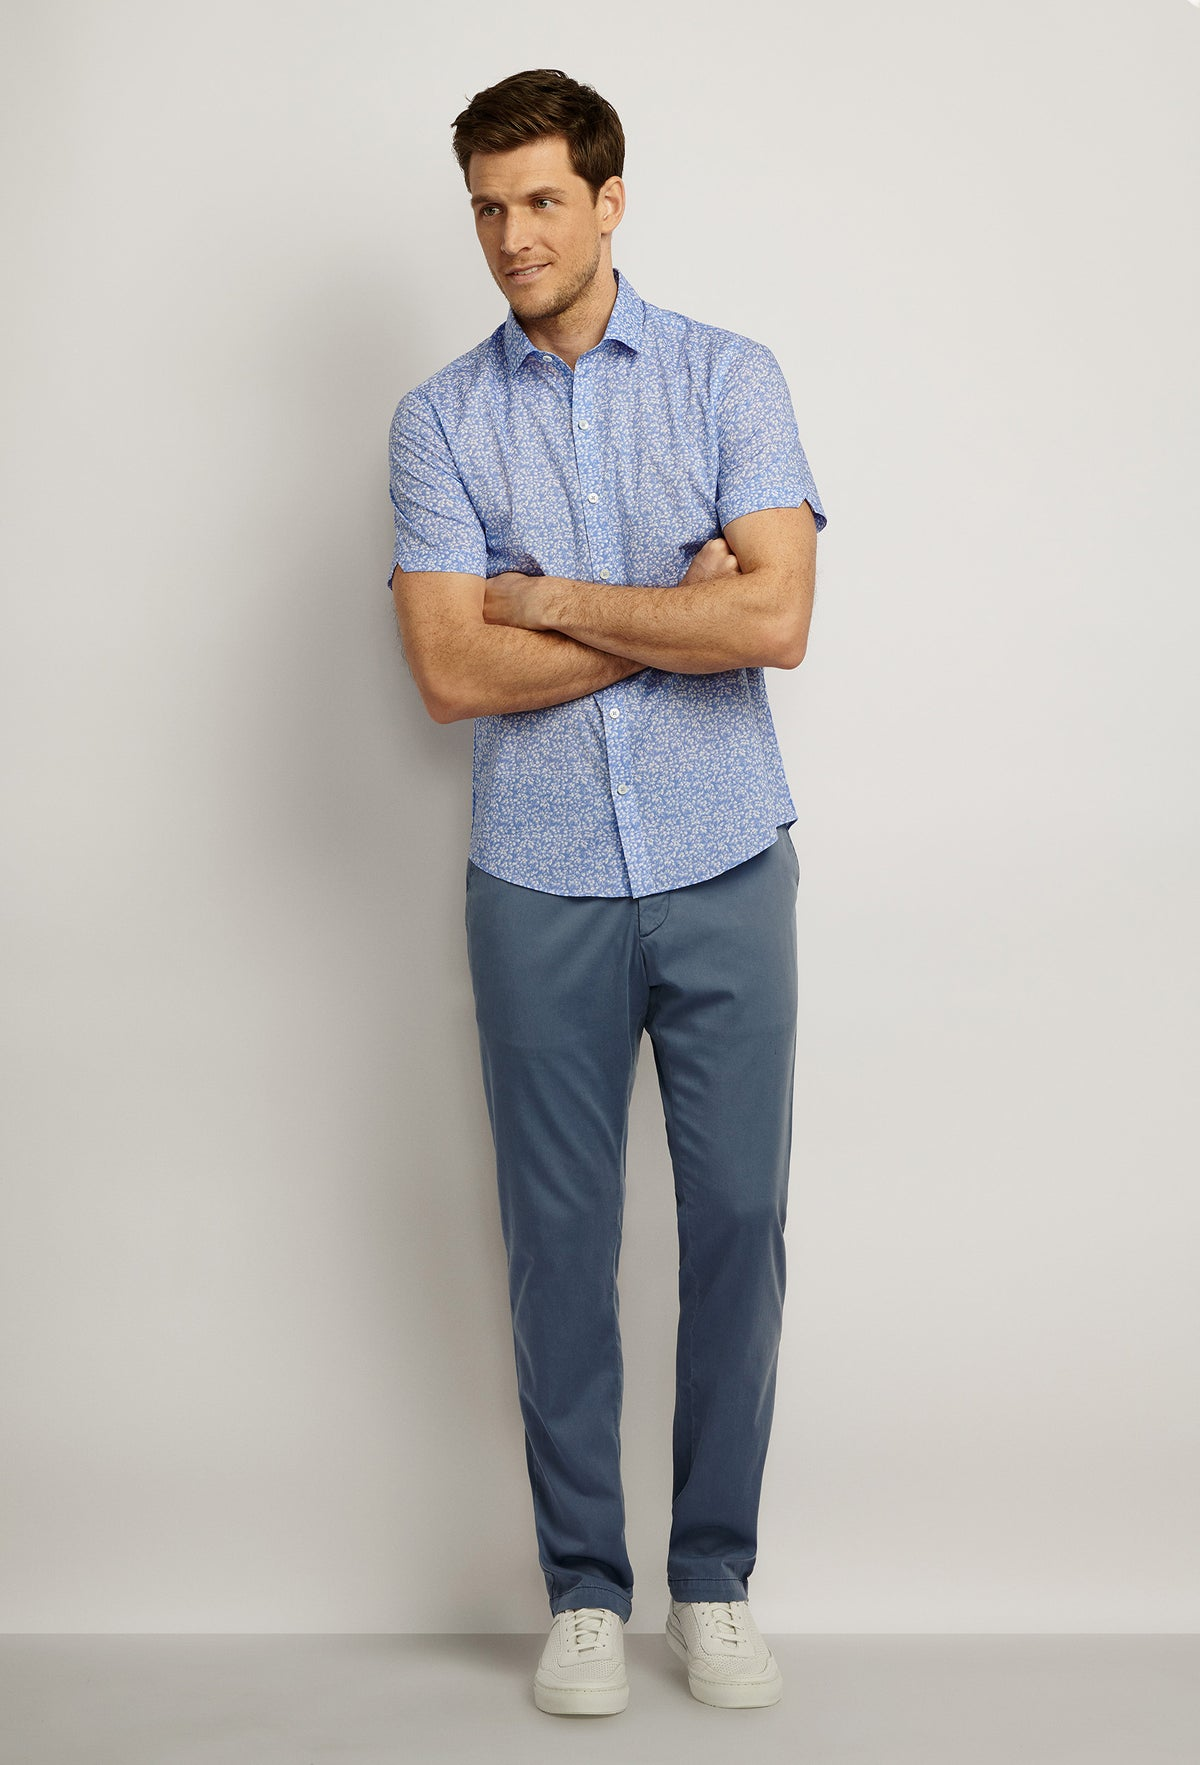 ZACHARY-PRELL-Defazio-ShirtsModern-Menswear-New-Dress-Code